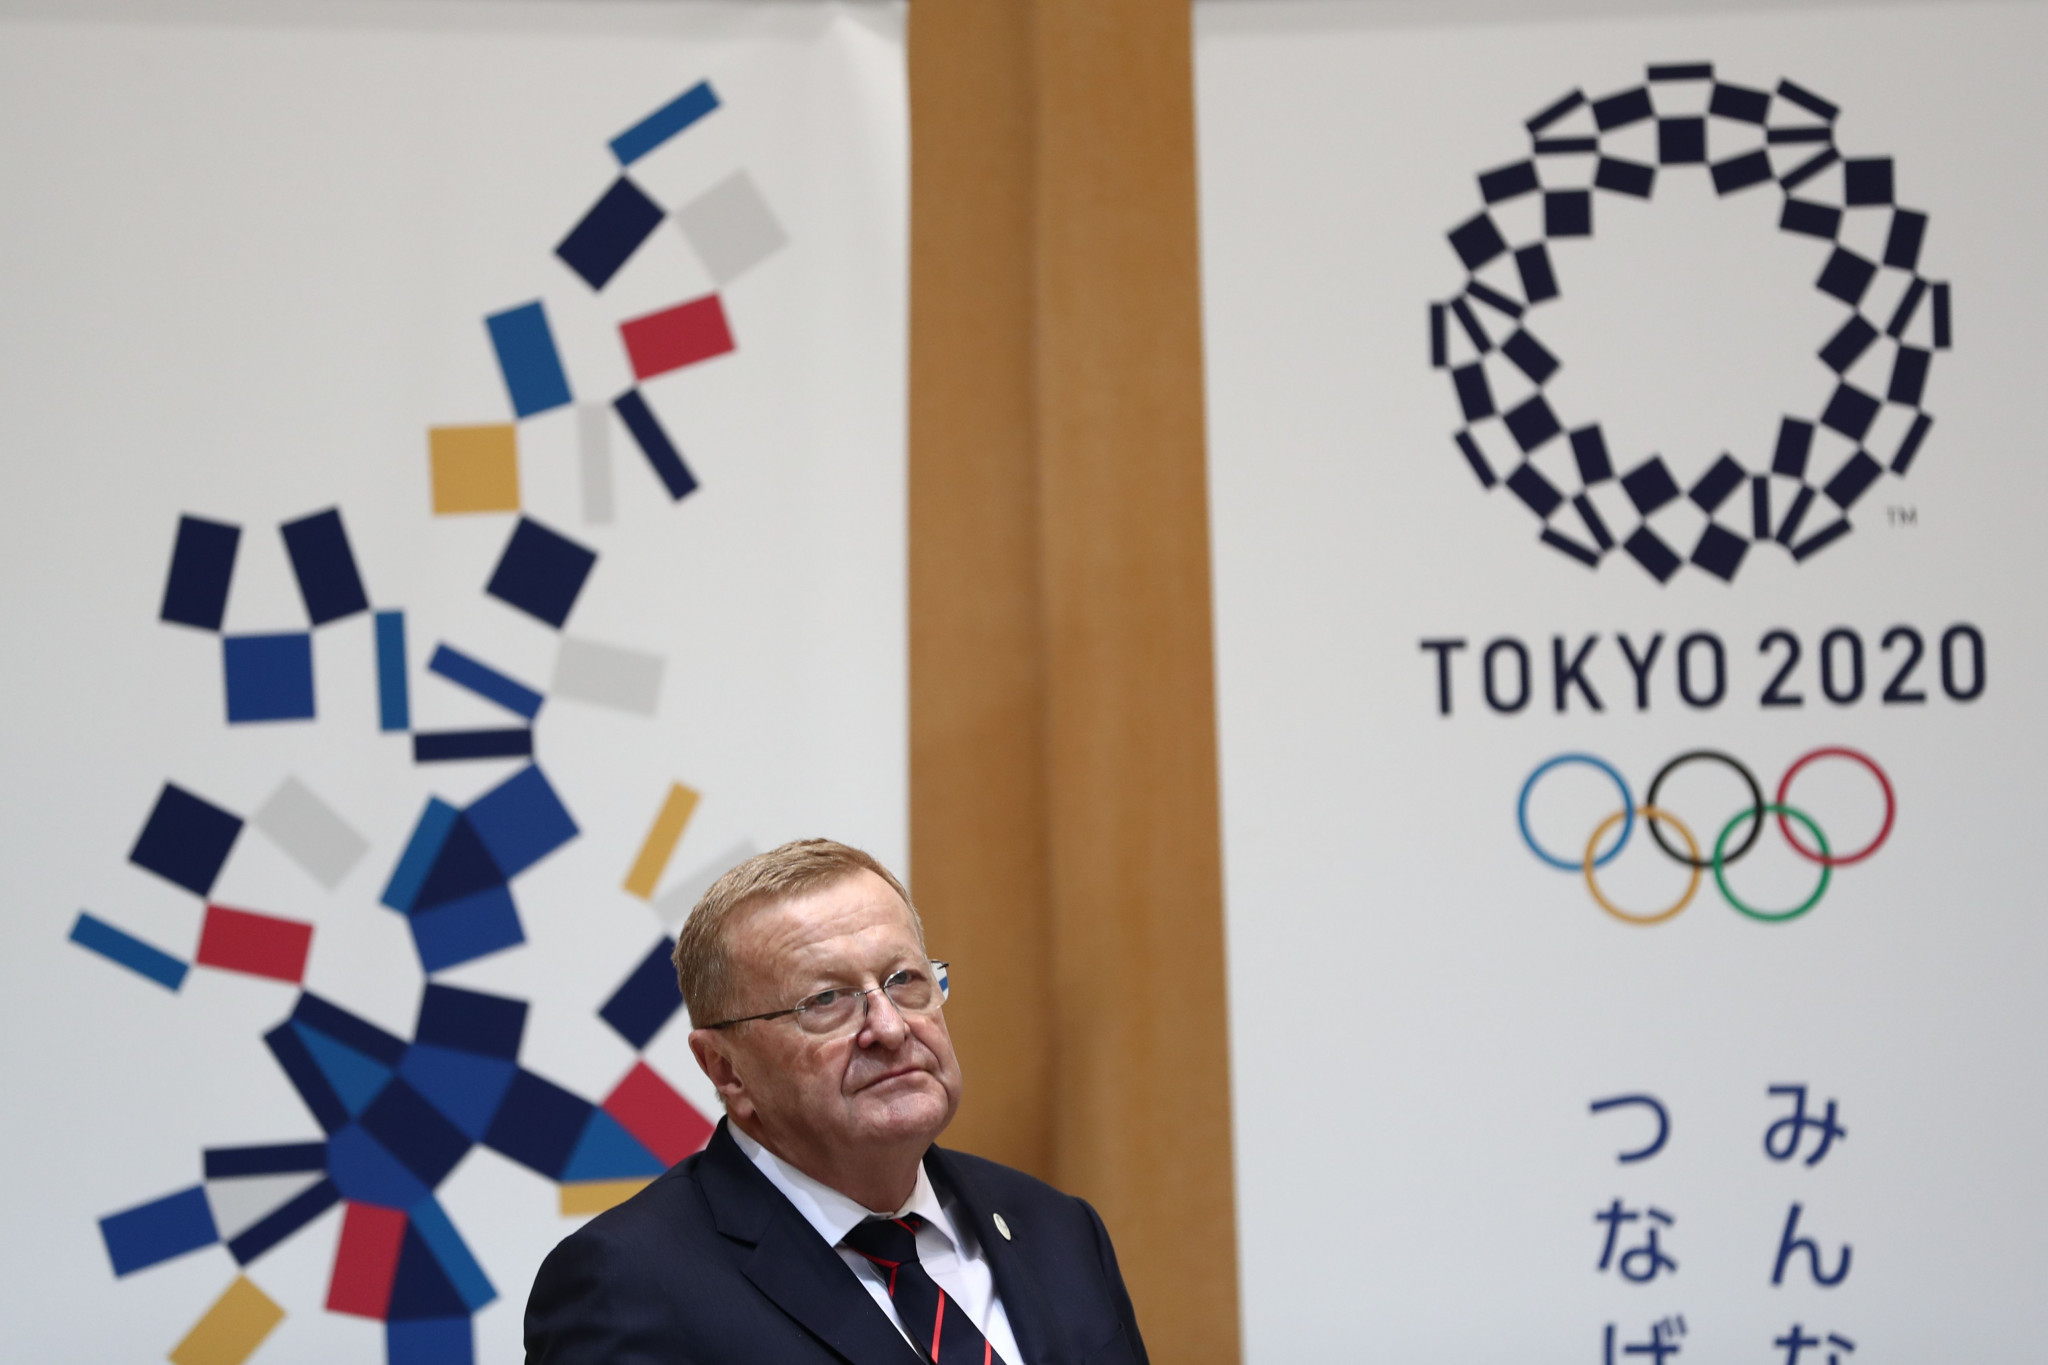 John Coates has said Tokyo 2020 will take place next year with or without COVID-19 ©Getty Images